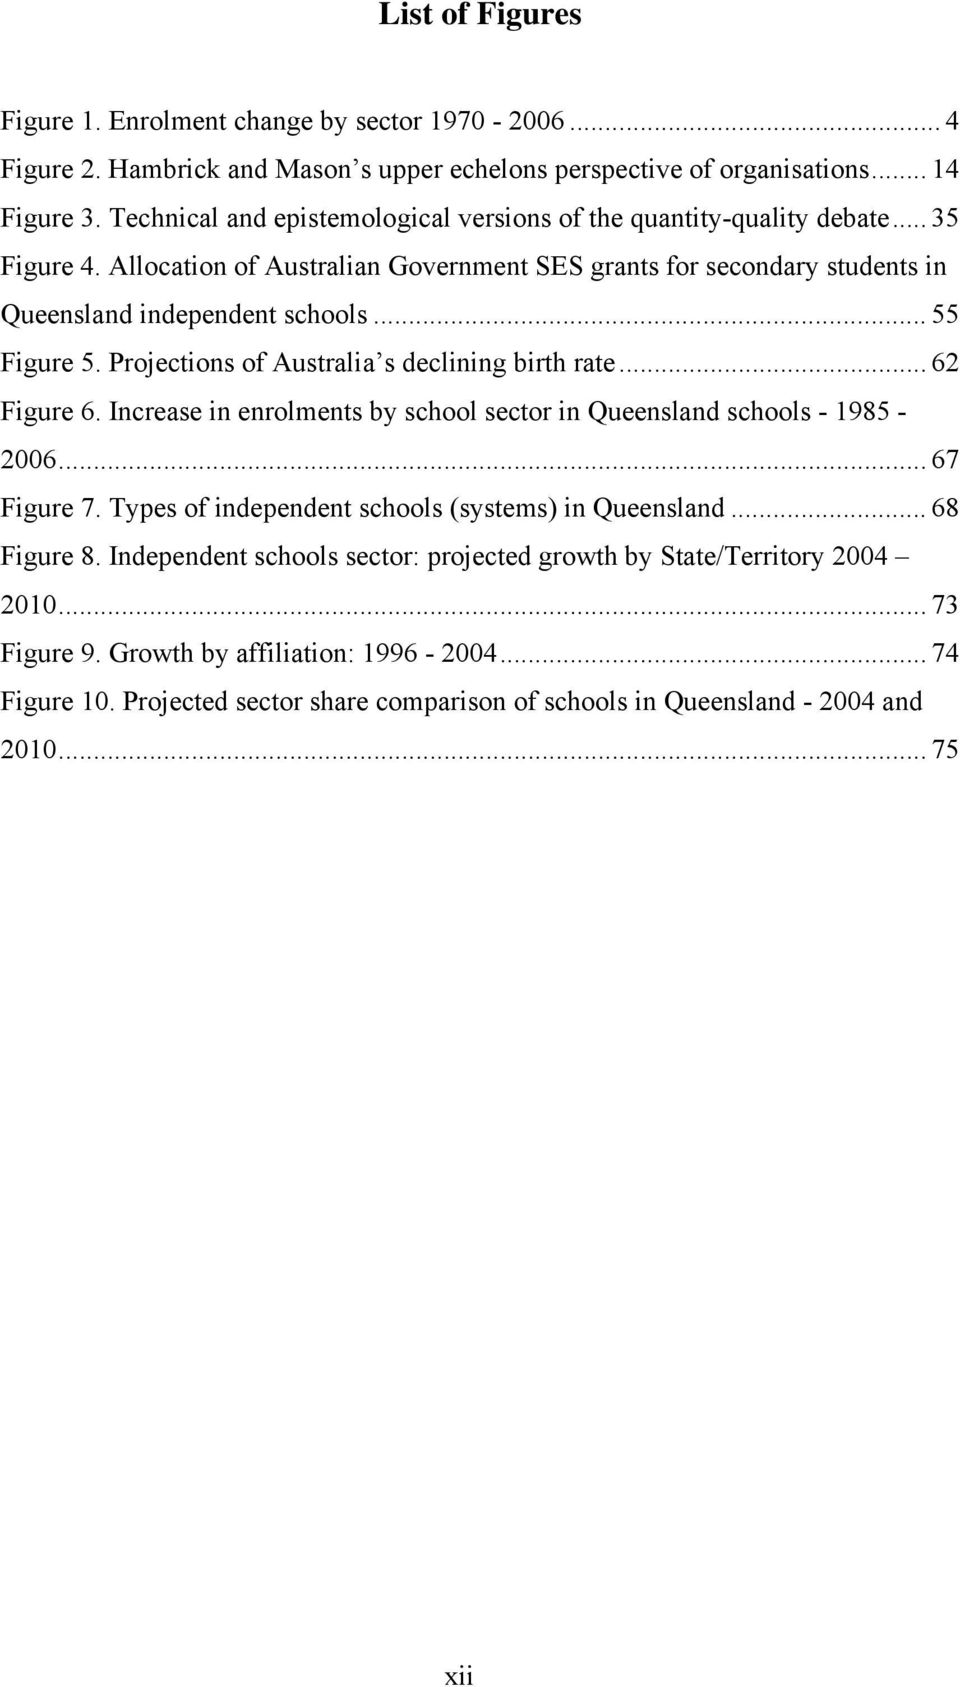 .. 55 Figure 5. Projections of Australia s declining birth rate... 62 Figure 6. Increase in enrolments by school sector in Queensland schools - 1985-2006... 67 Figure 7.